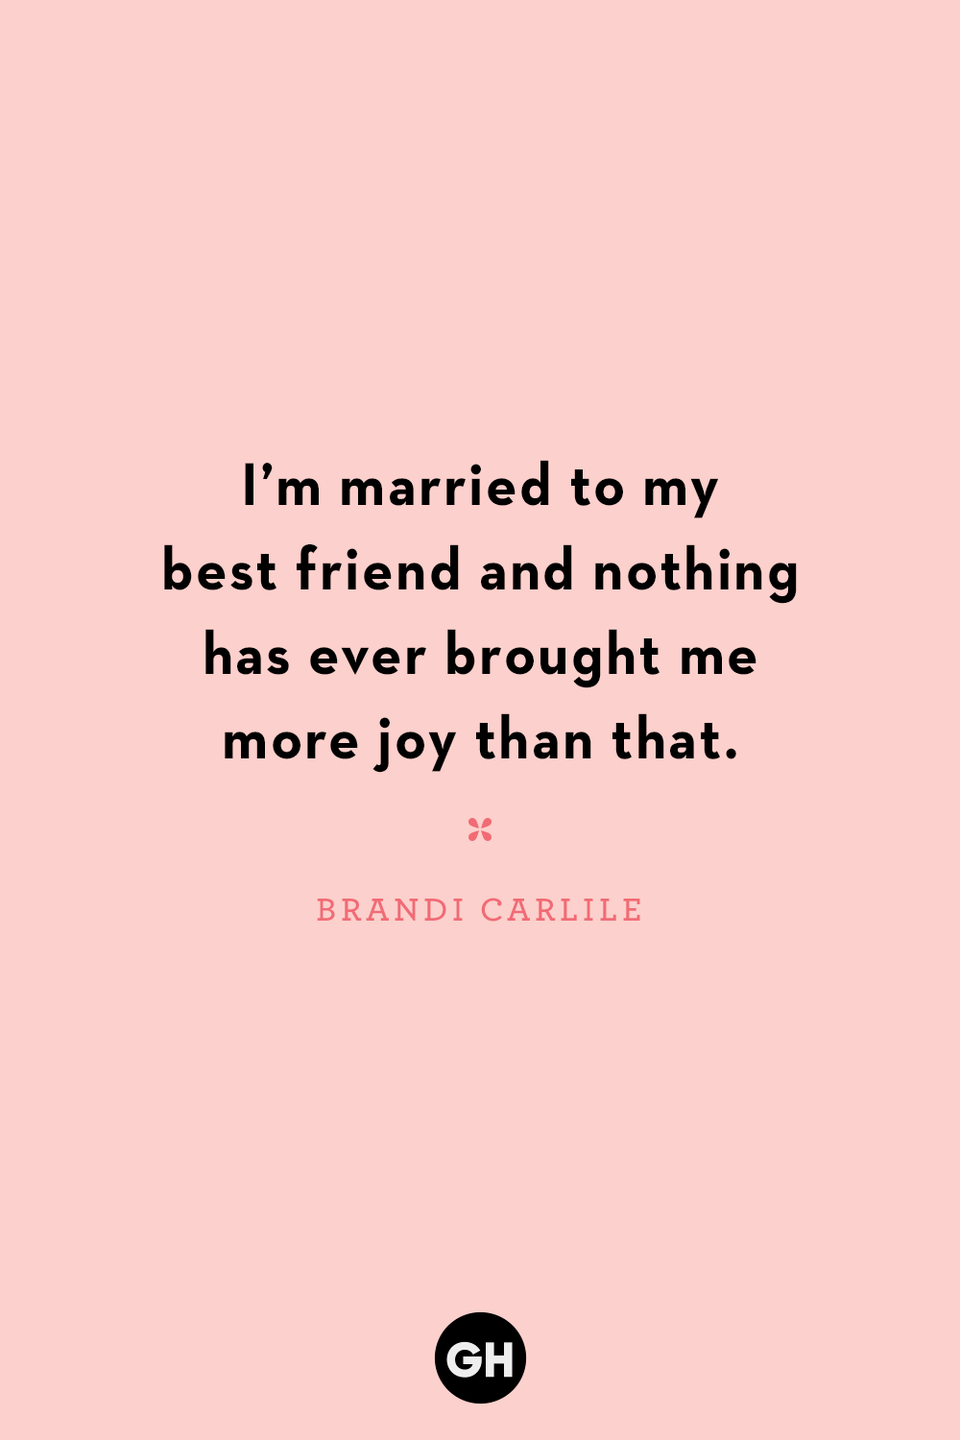 <p>I'm married to my best friend and nothing has ever brought me more joy than that.</p>